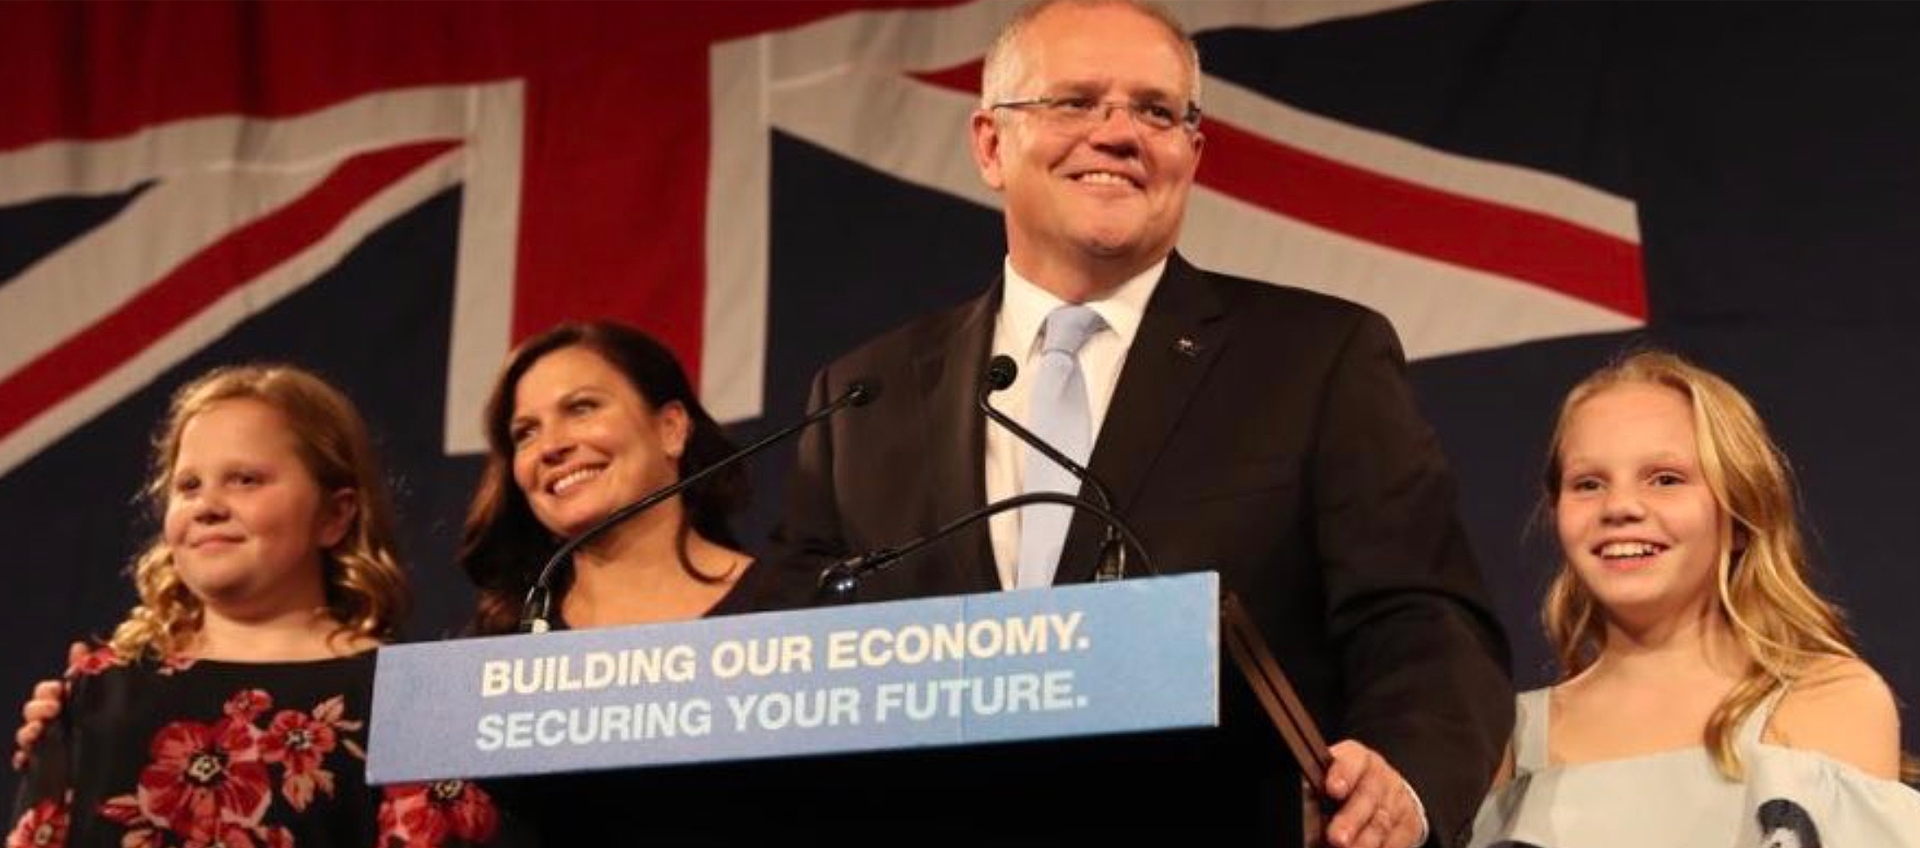 Scott Morrison and his family after he was re-elected as Australian Prime Minister.